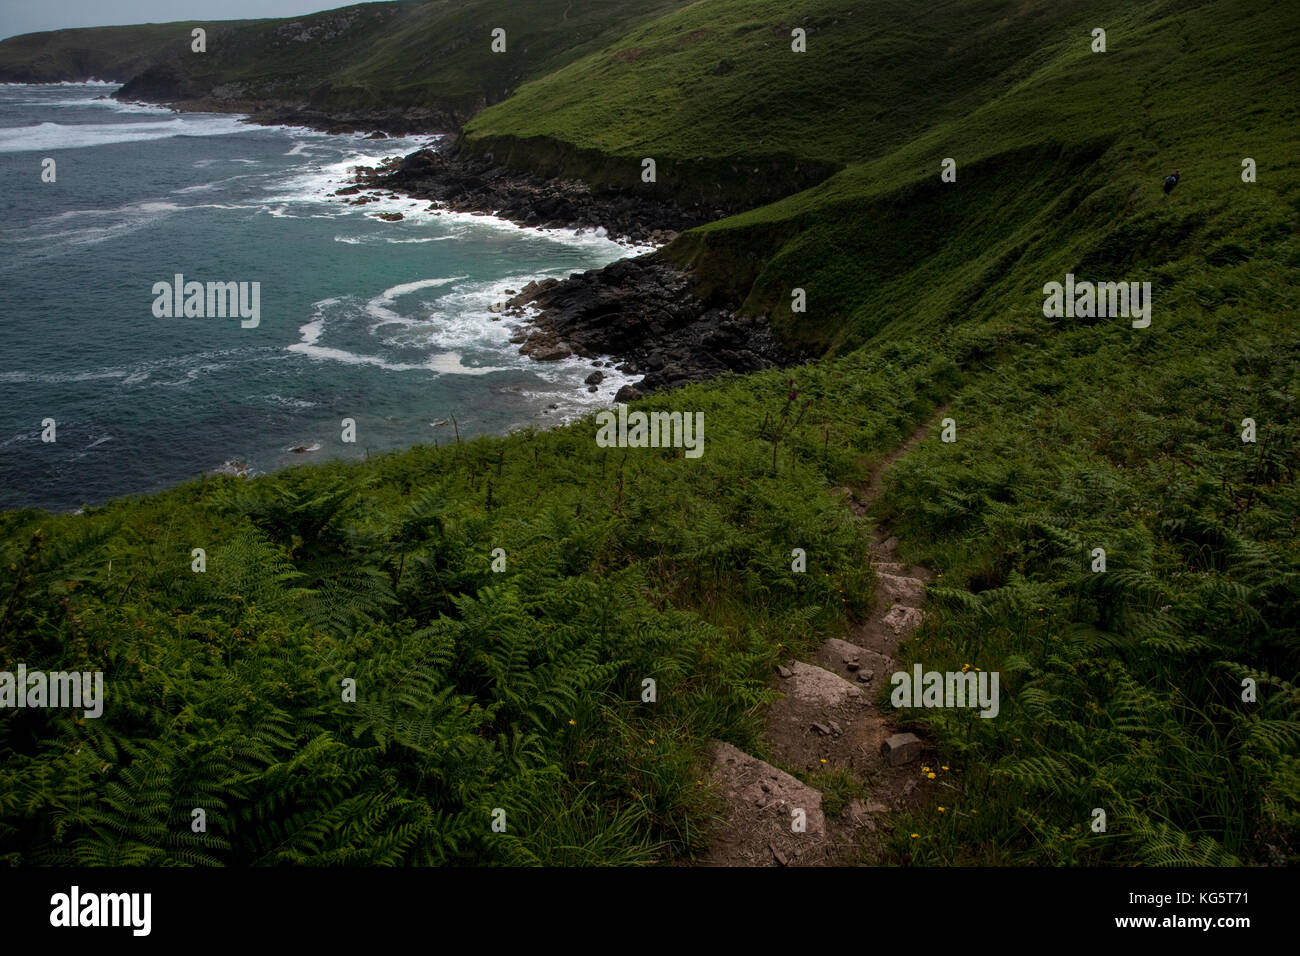 The National South West Coastal Path above Zennor, Cornwall, England. - Stock Image